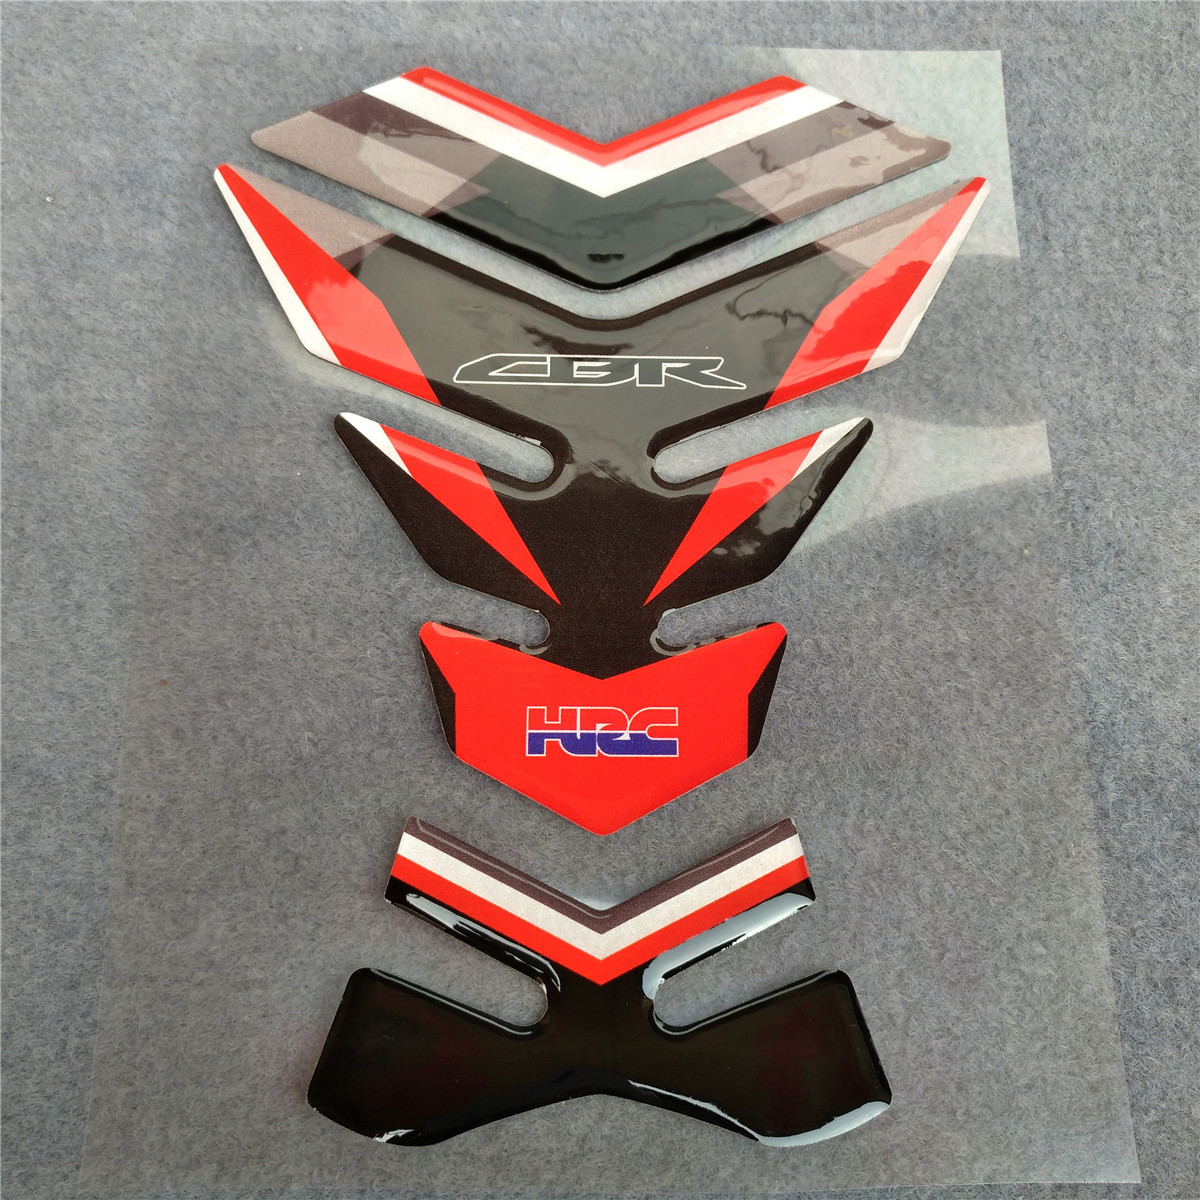 Motorcycle For Honda Fish Bone Fuel Tank Pad Tank Cap Cover Motorbike 3D Resin Protector Decal Sticker CBR600 CBR1000 CBR 600 image